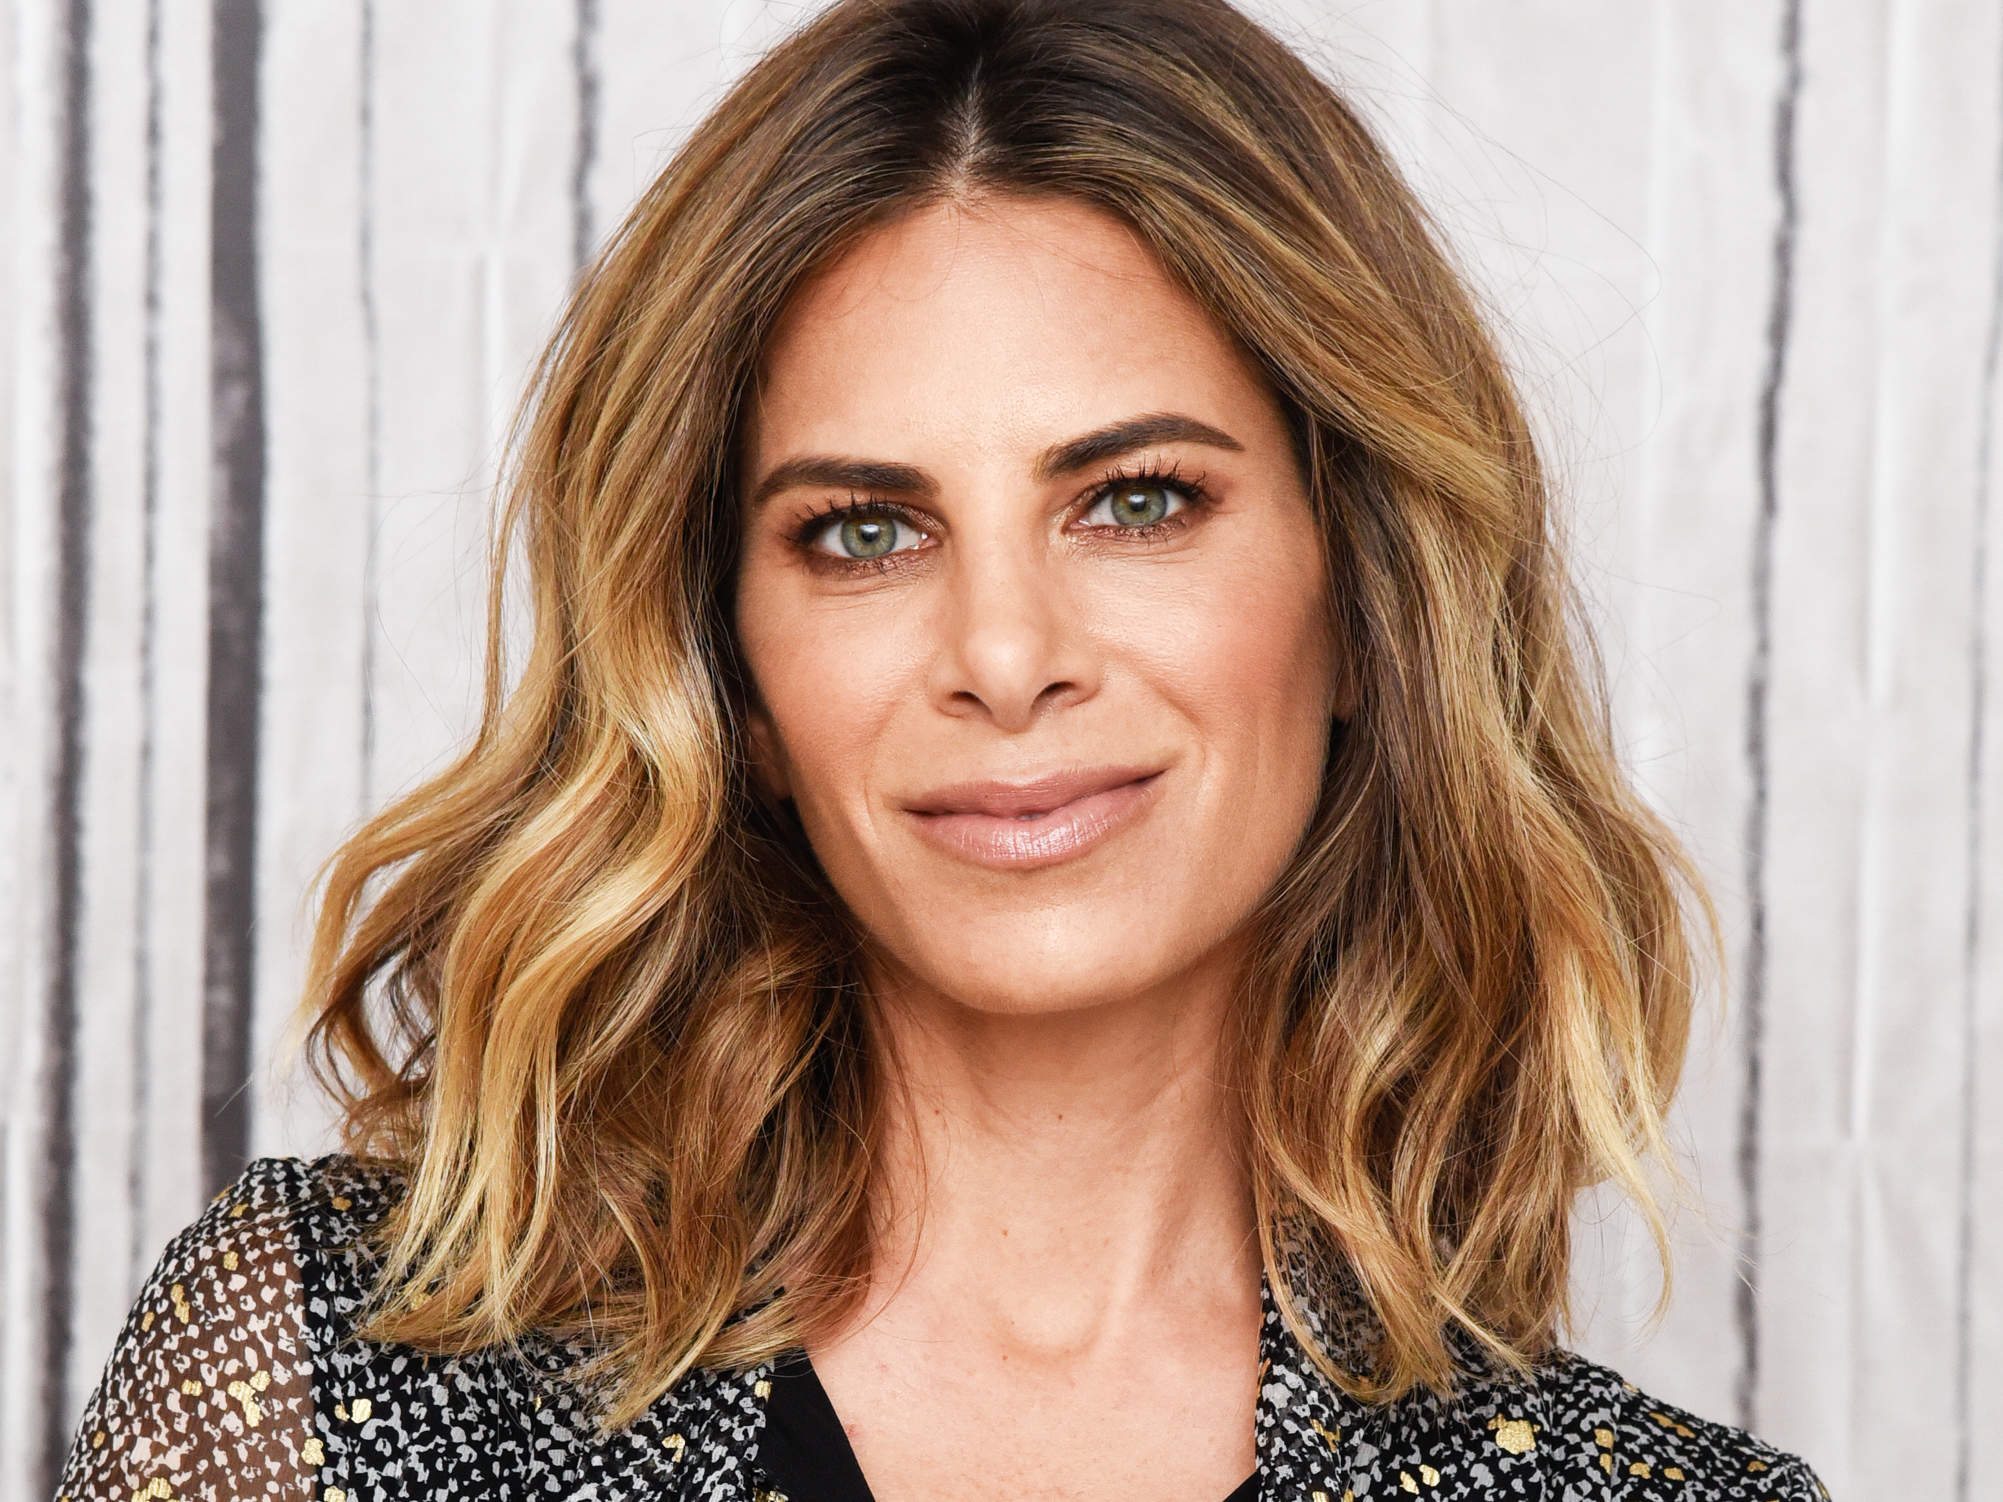 jillian-michaels-low-impact-cardio-workout-video